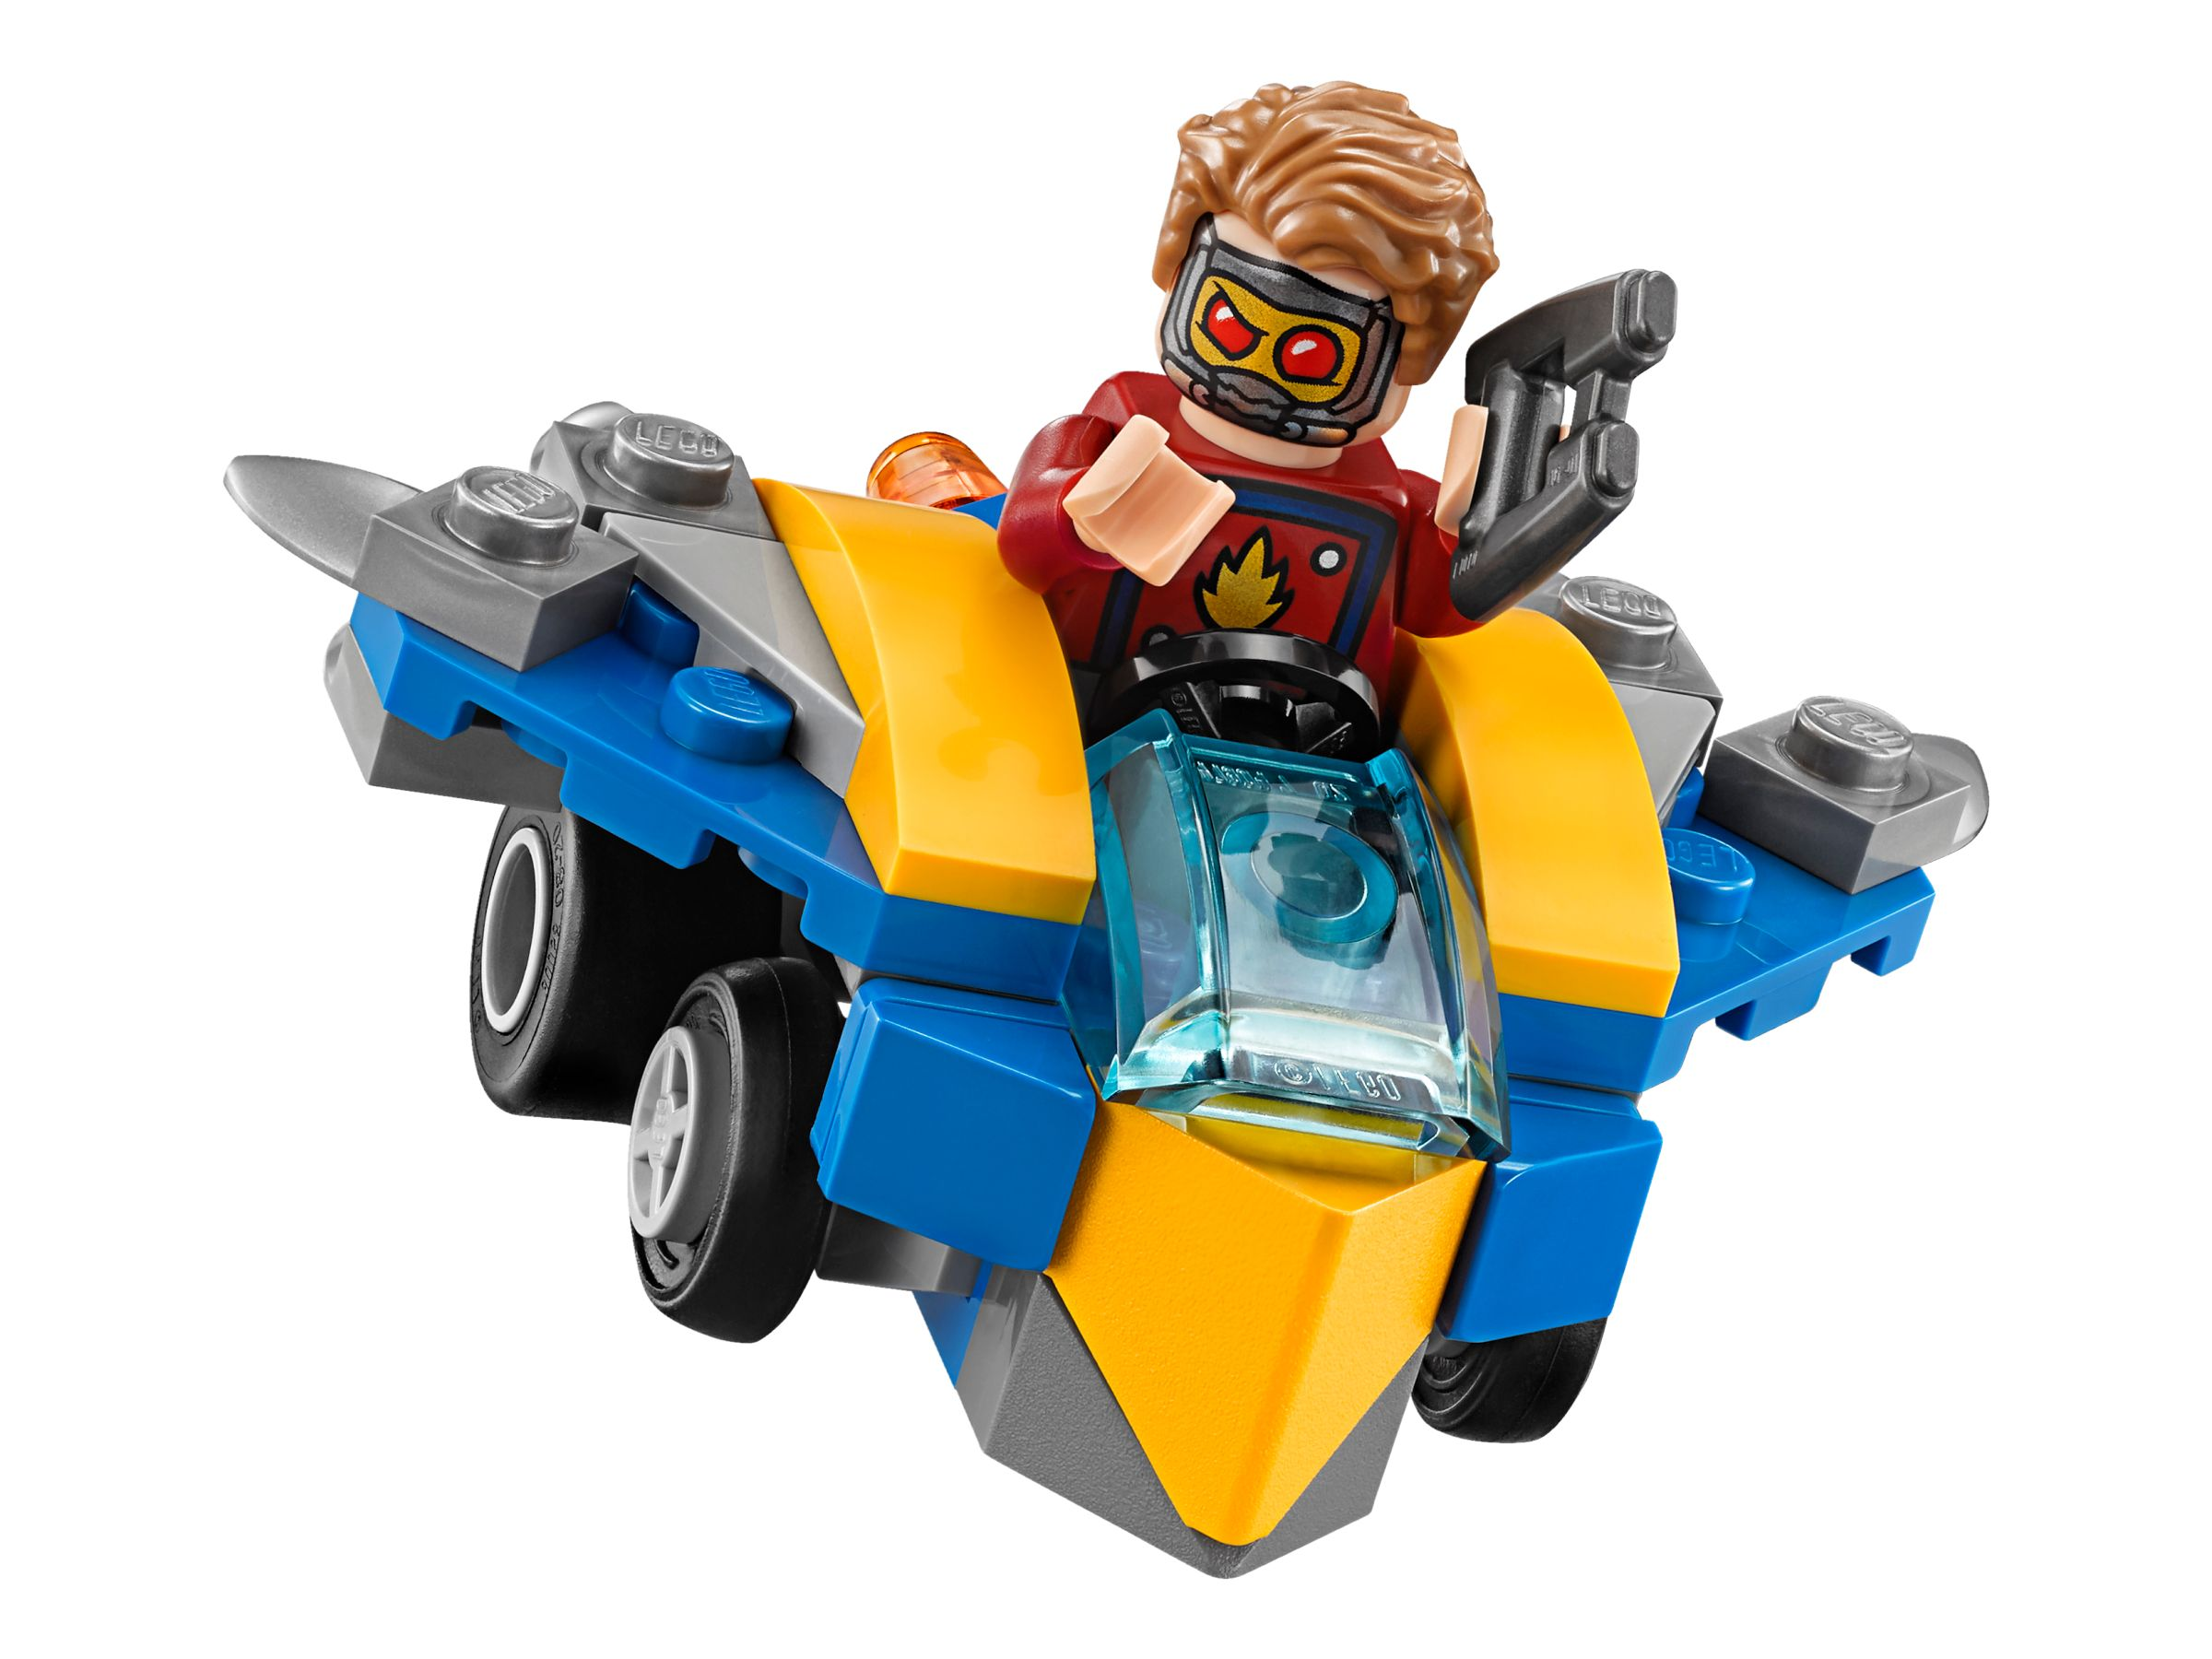 LEGO Super Heroes 76090 Mighty Micros: Star-Lord vs. Nebula LEGO_76090_alt5.jpg